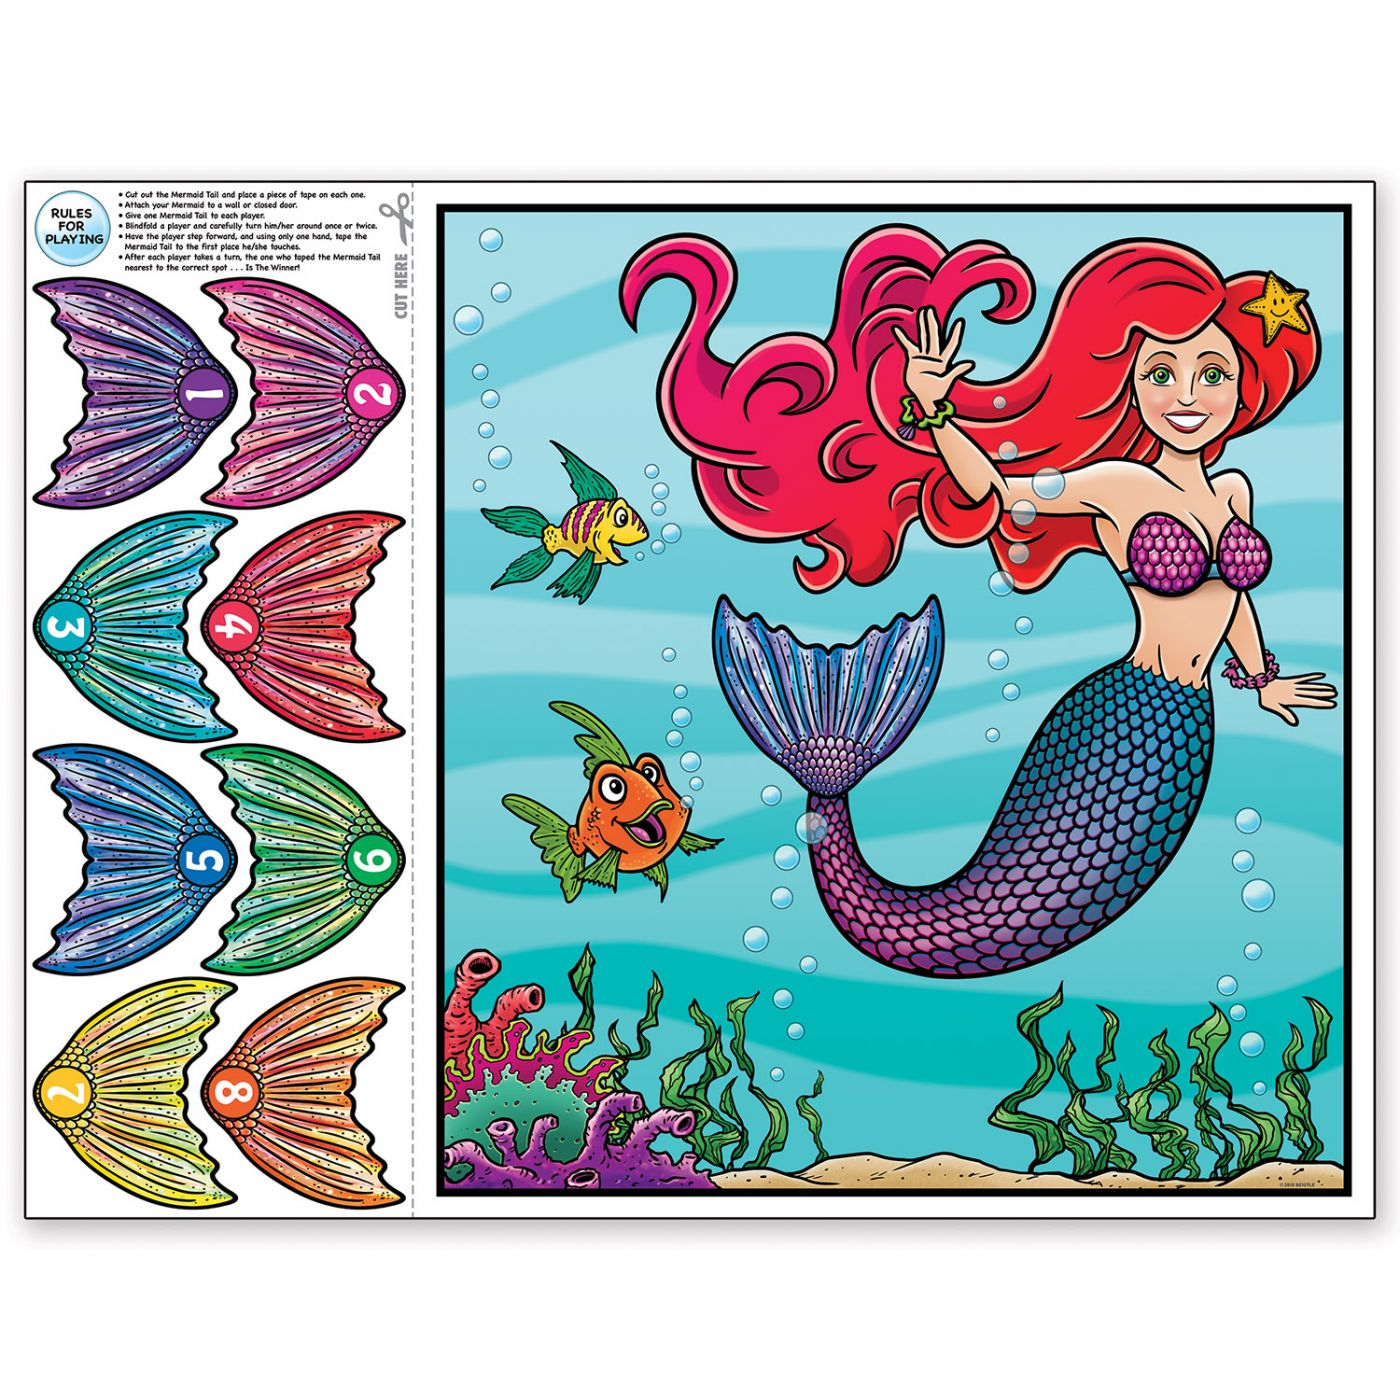 Pin The Tail On The Mermaid Game (24) image